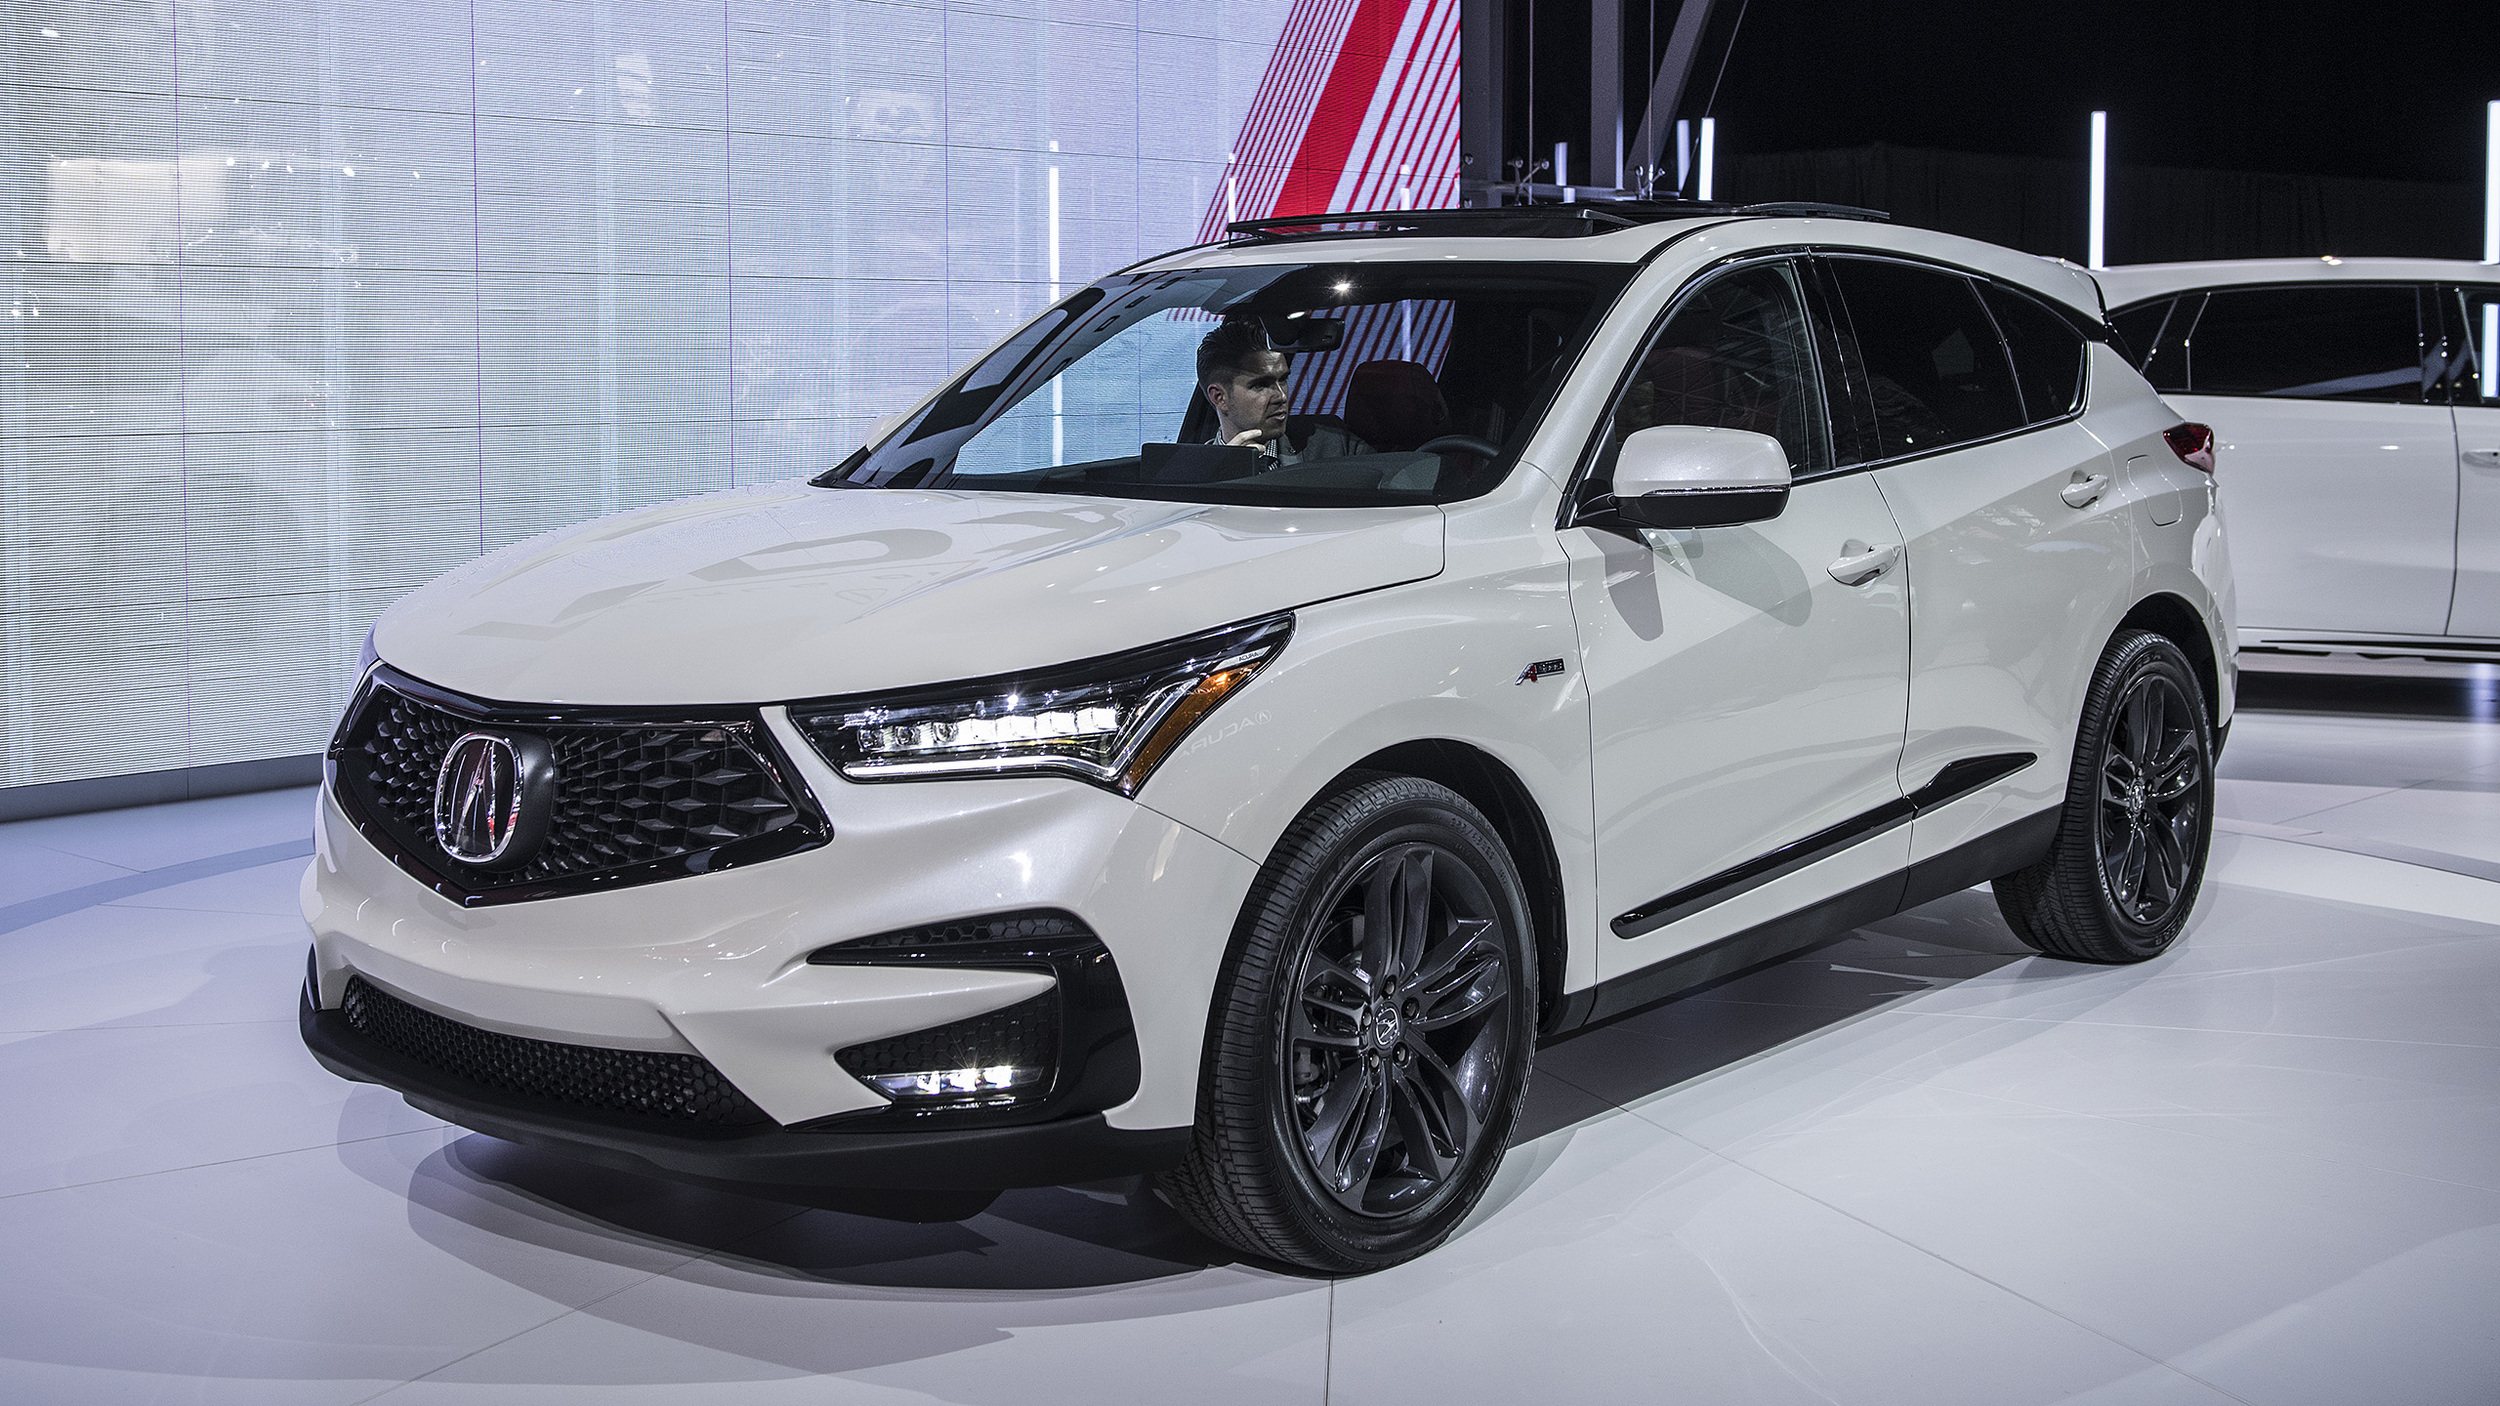 2019 Acura Rdx A Spec New York 2018 Photo Gallery Autoblog